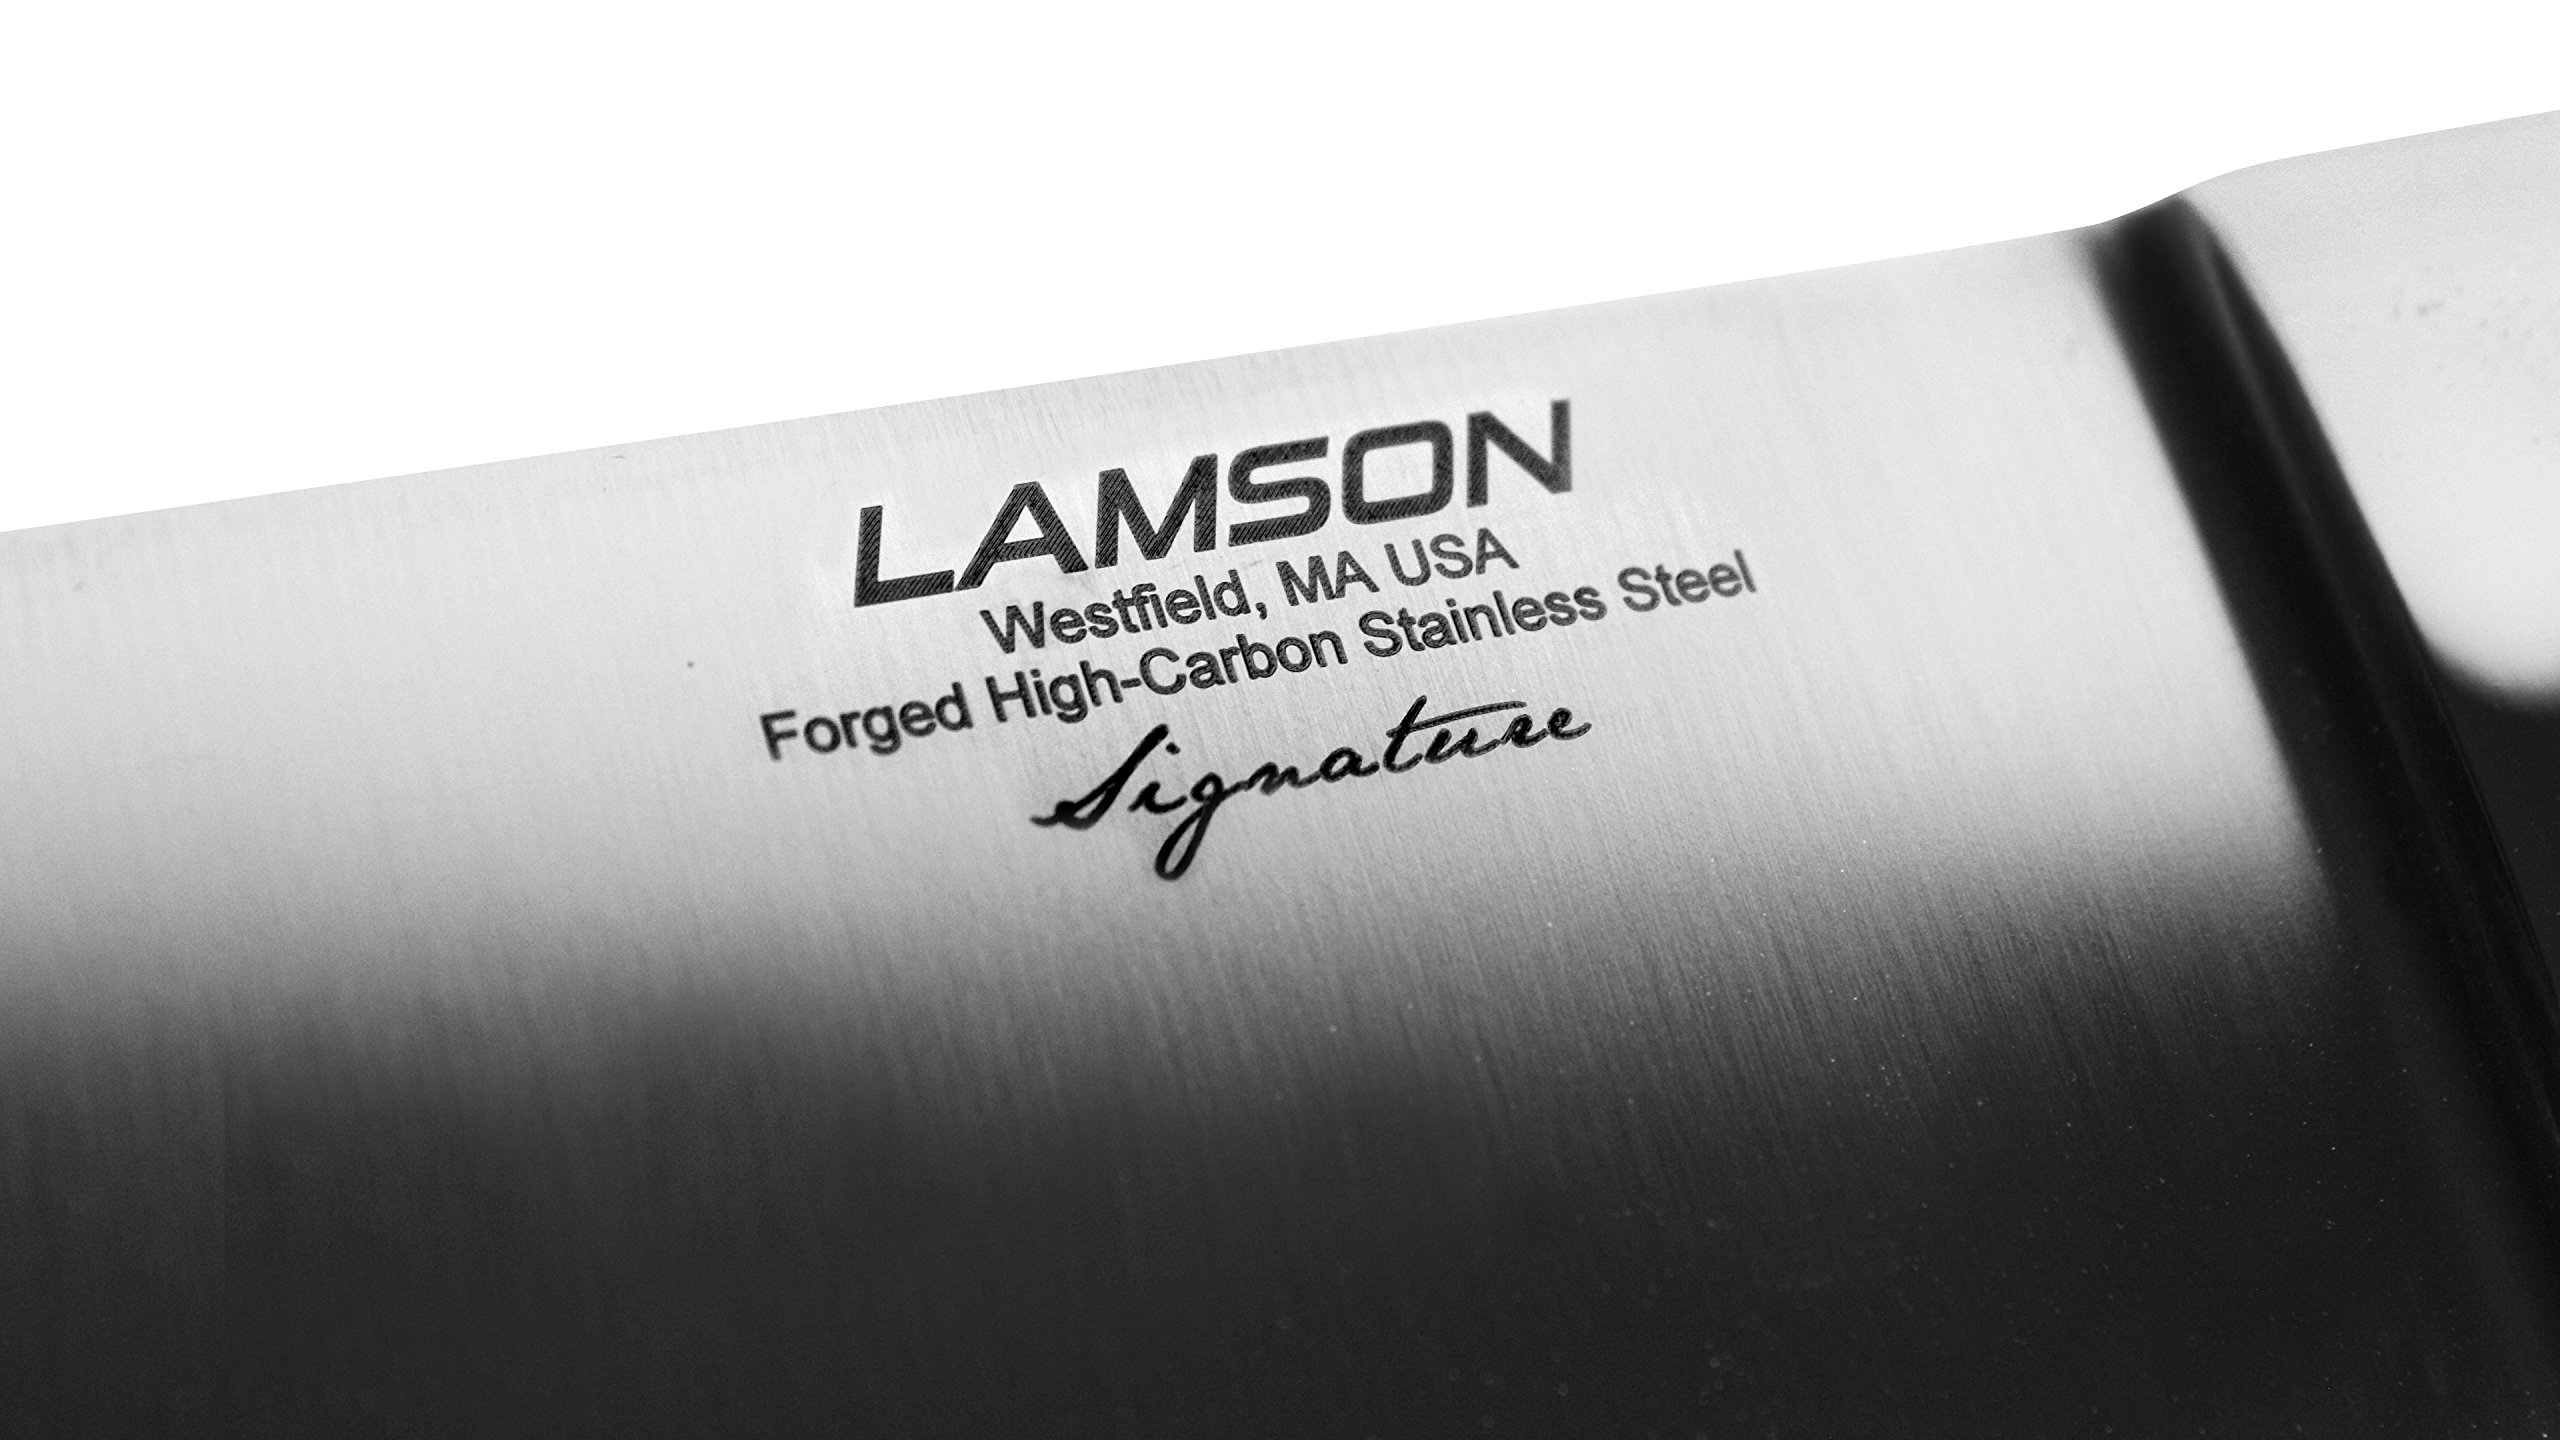 Lamson Slicing Knife - Made in USA - Signature Forged Series - 10-inch Hollow Edge by Lamson (Image #2)